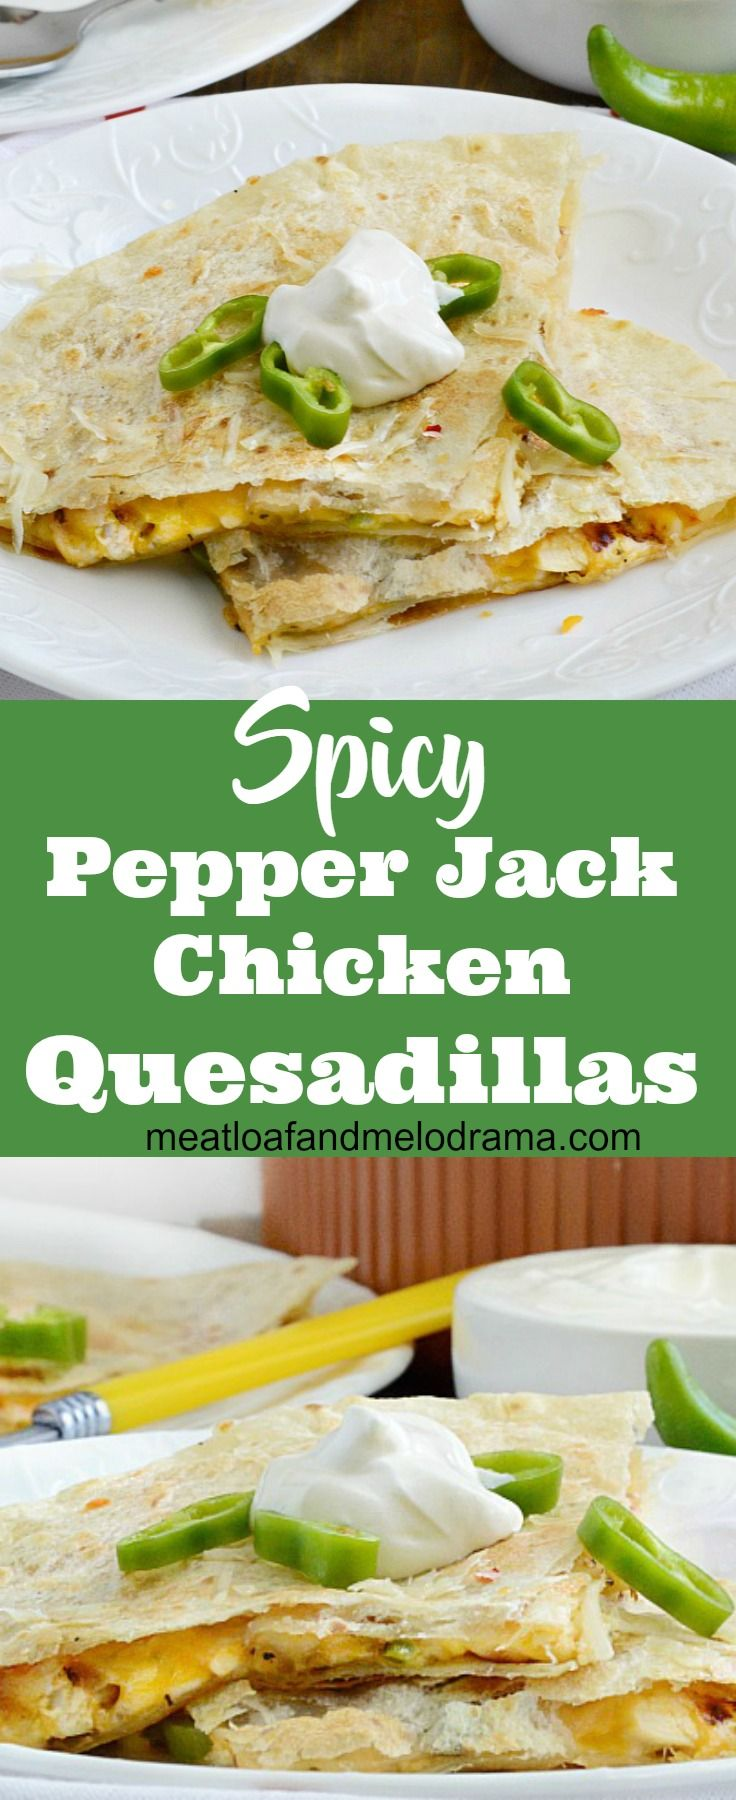 Spicy Pepper Jack Chicken Quesadillas - Quick and easy lunch or dinner made with leftover cooked chicken, pepper jack and cheddar cheese and two different peppers. Takes just 15 minutes to make and perfect for busy weeknights or a weekend snack! from Meatloaf and Melodrama